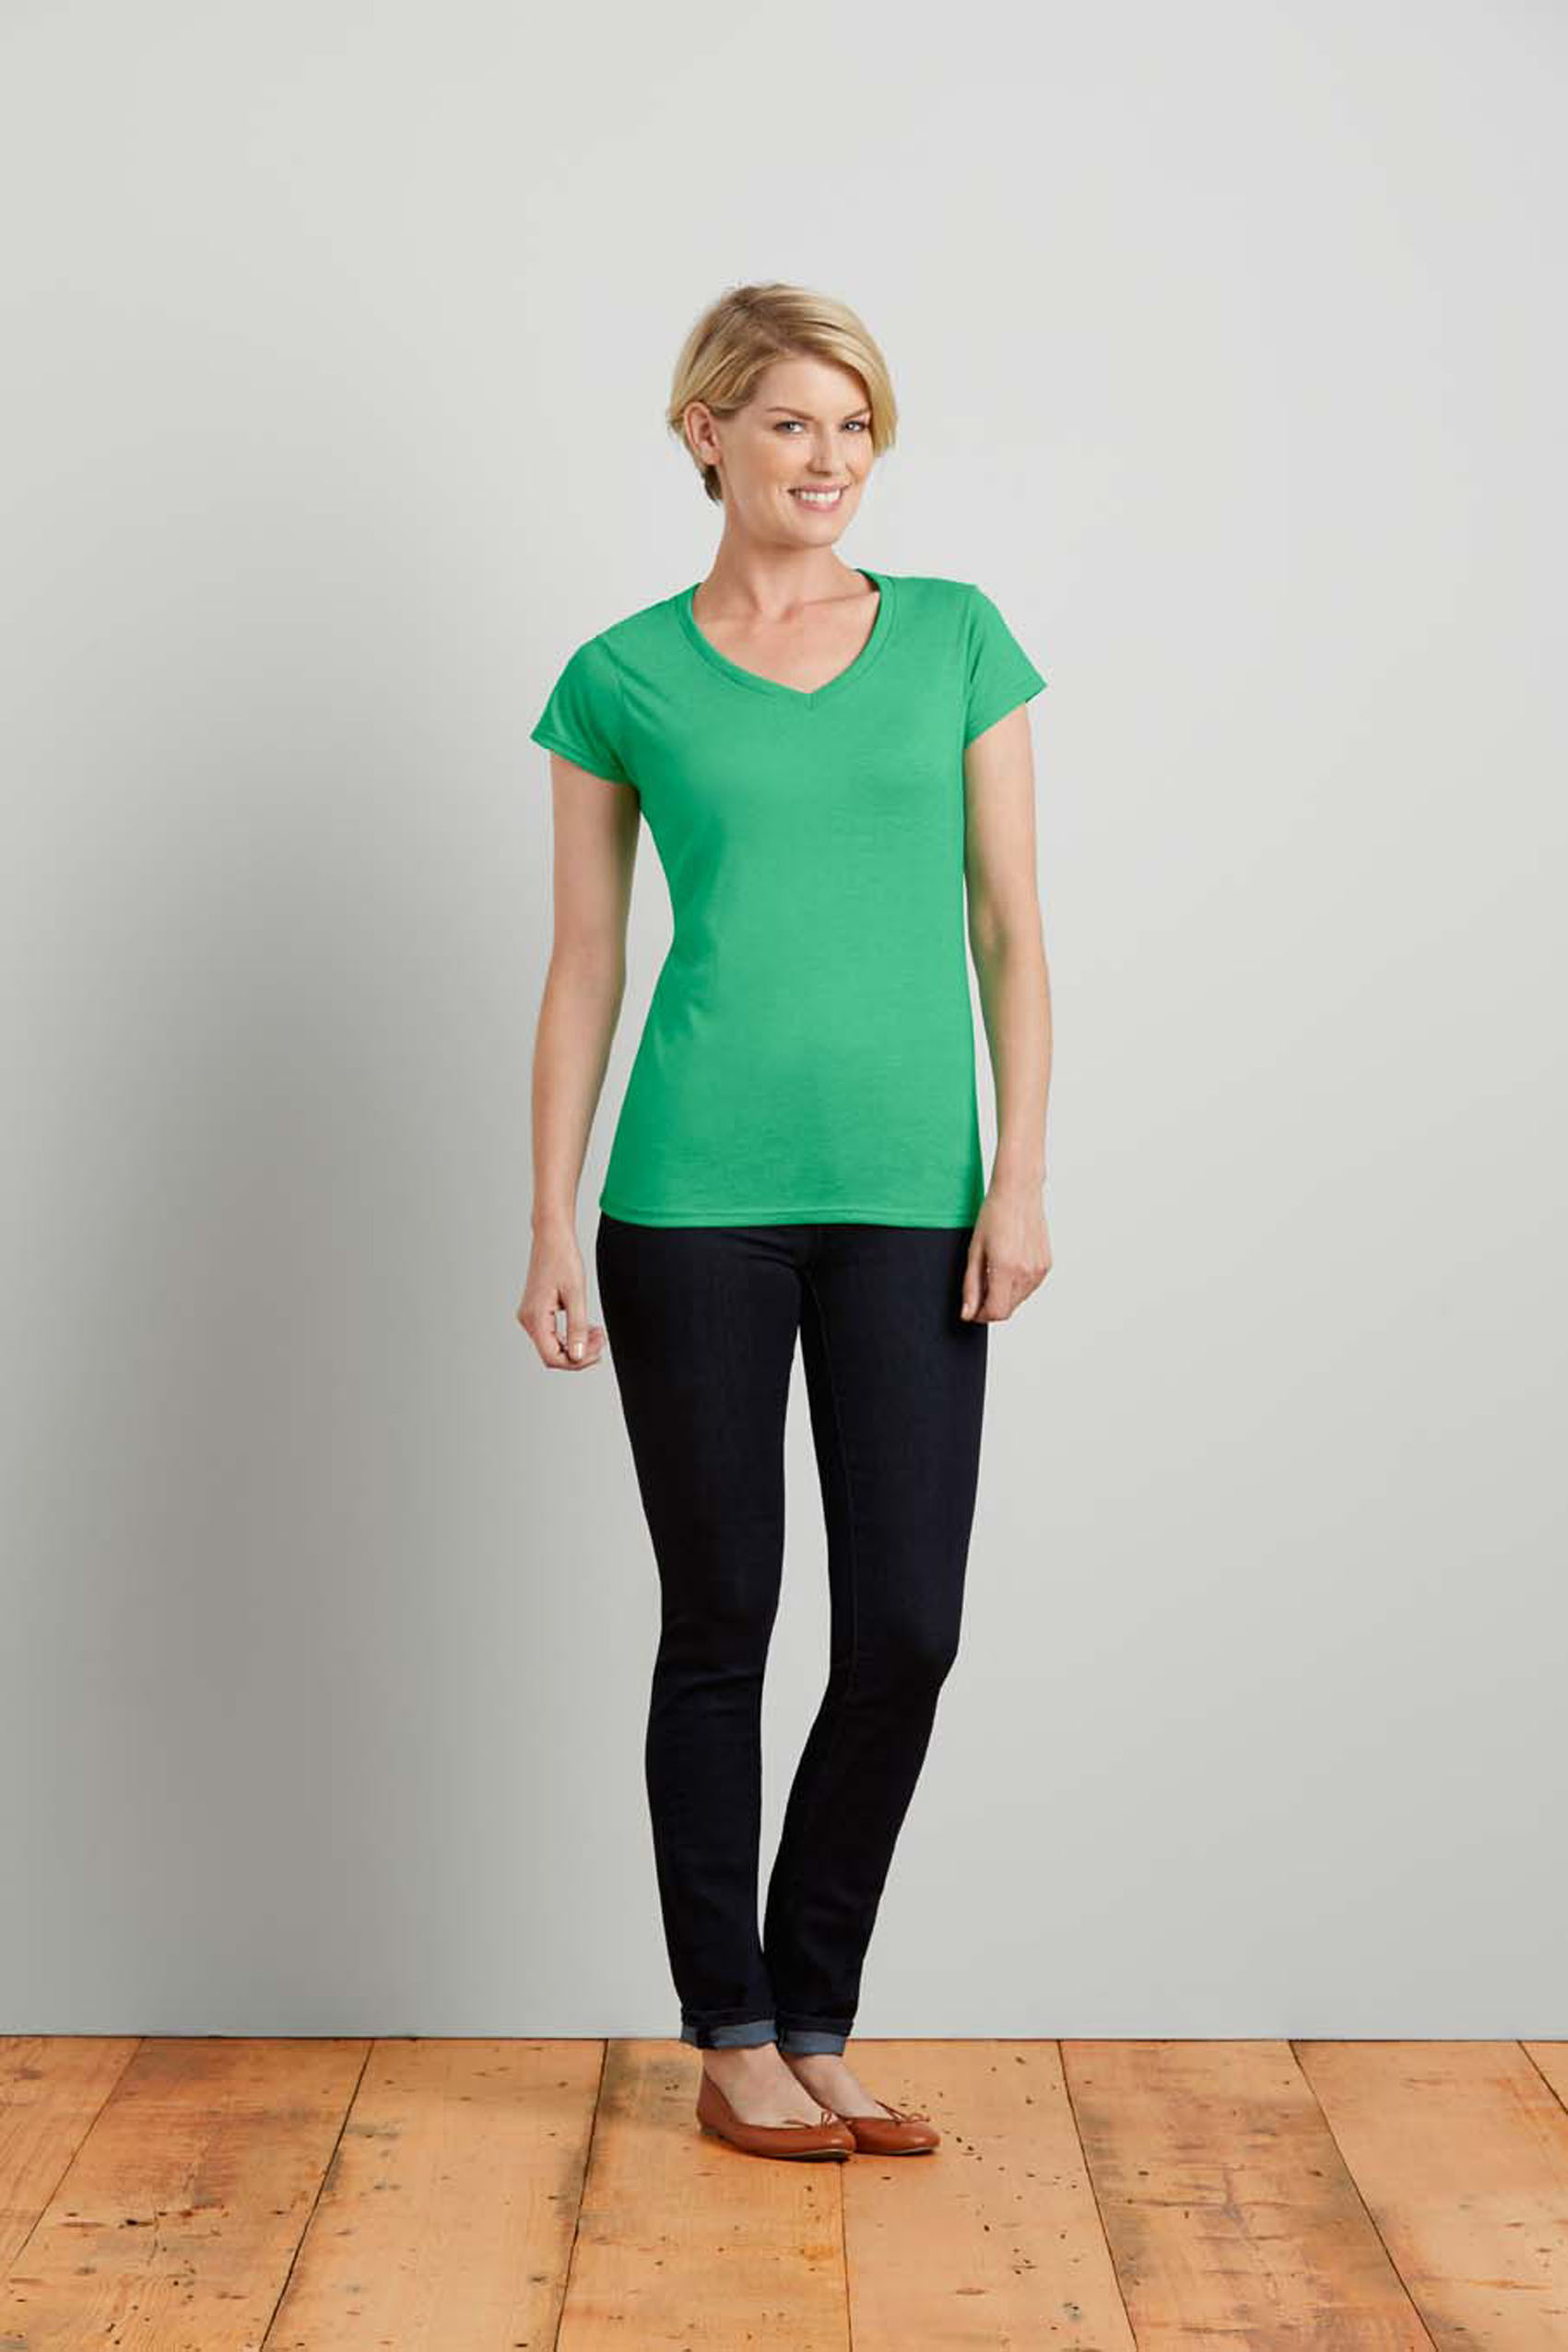 T-shirt v-neck Softstyle cotton for her